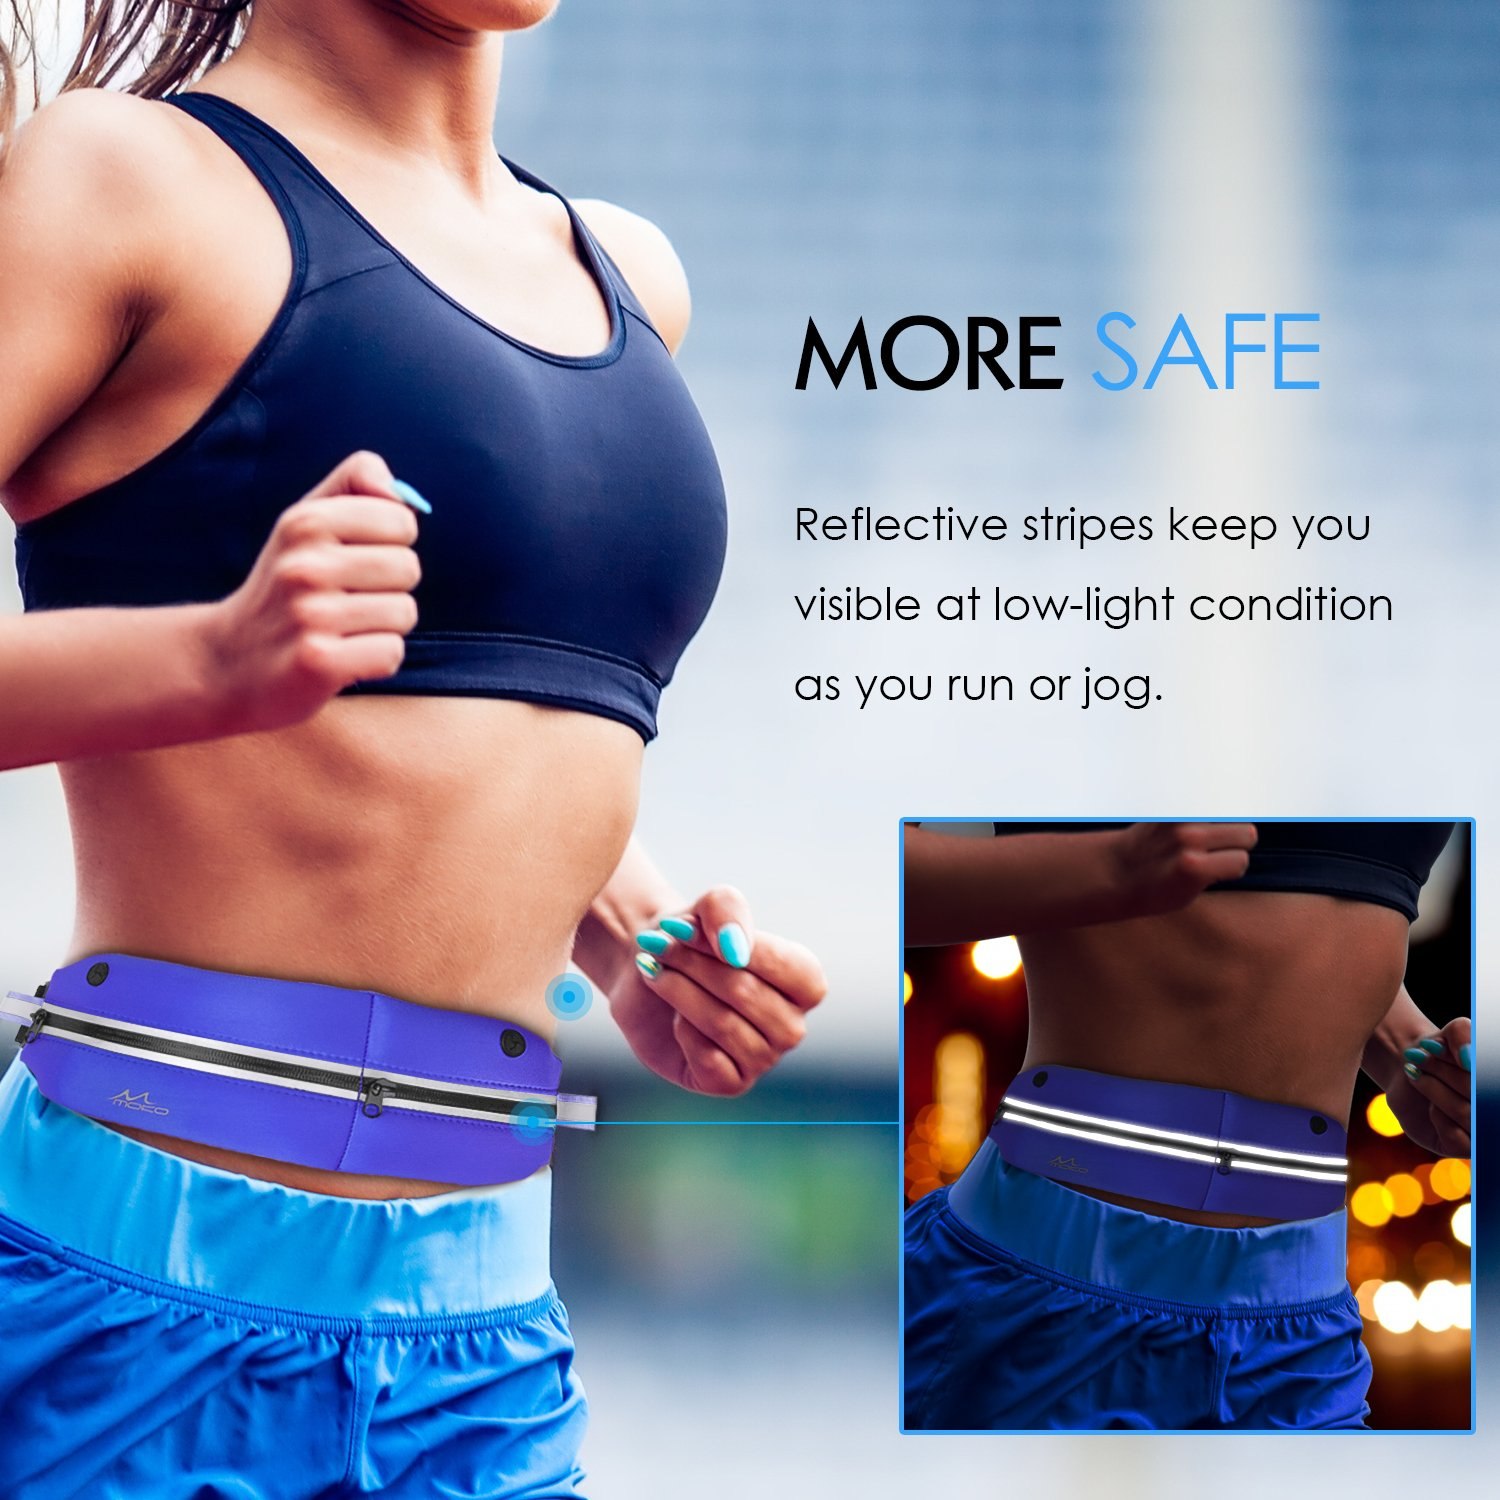 INDIGO Sports Running Waist Pack One Large /& One Small 6s 6s Plus Galaxy J3 MoKo Universal Outdoor Fanny Pack Running Belt with Dual Pouch Bag for iPhone 7 S7 Edge and Devices Under 6 INDIGO S7 Edge and Devices Under 6